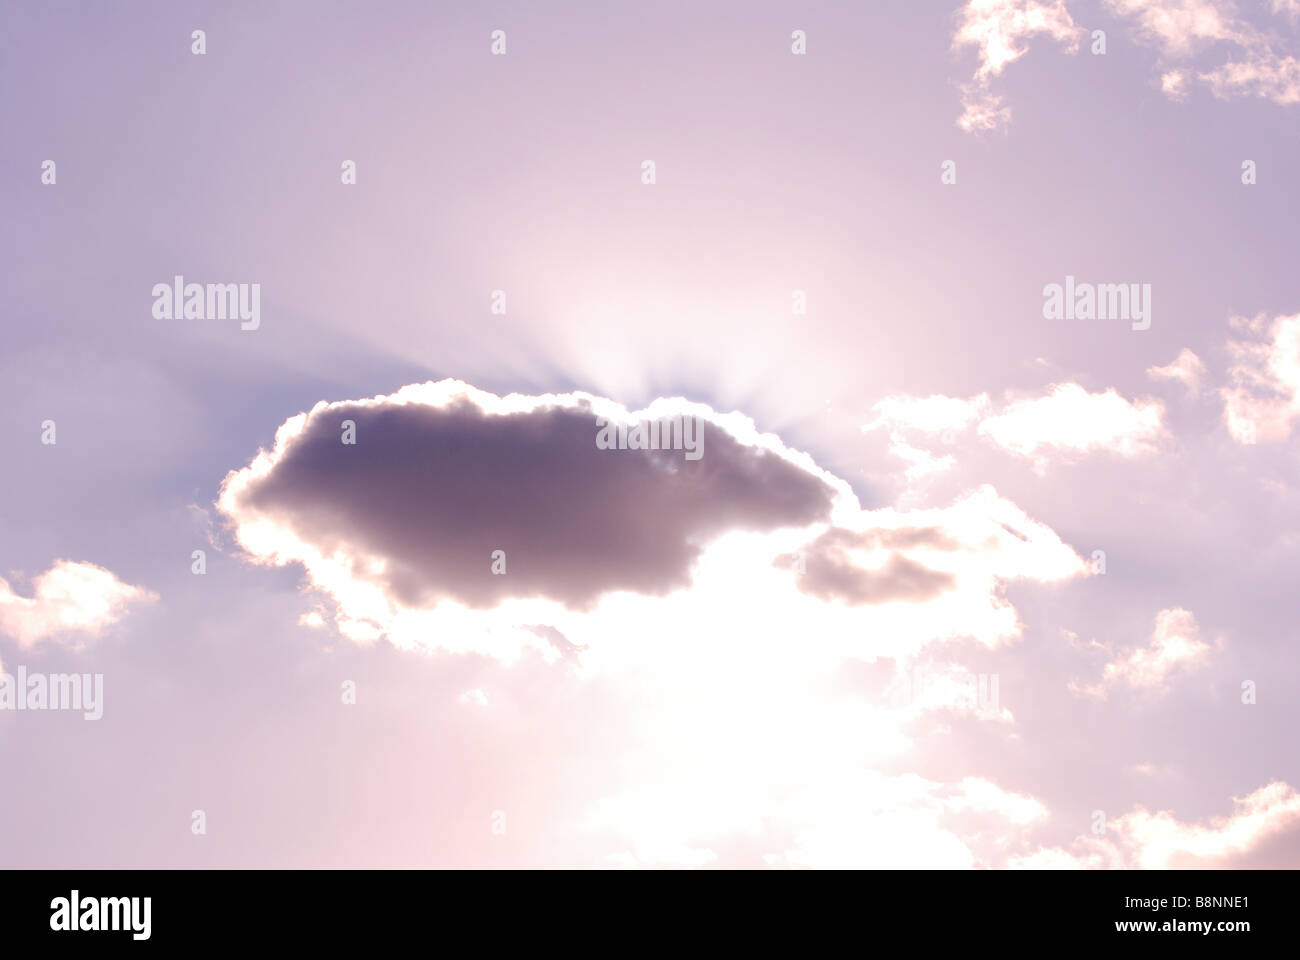 A godly cloud - Stock Image